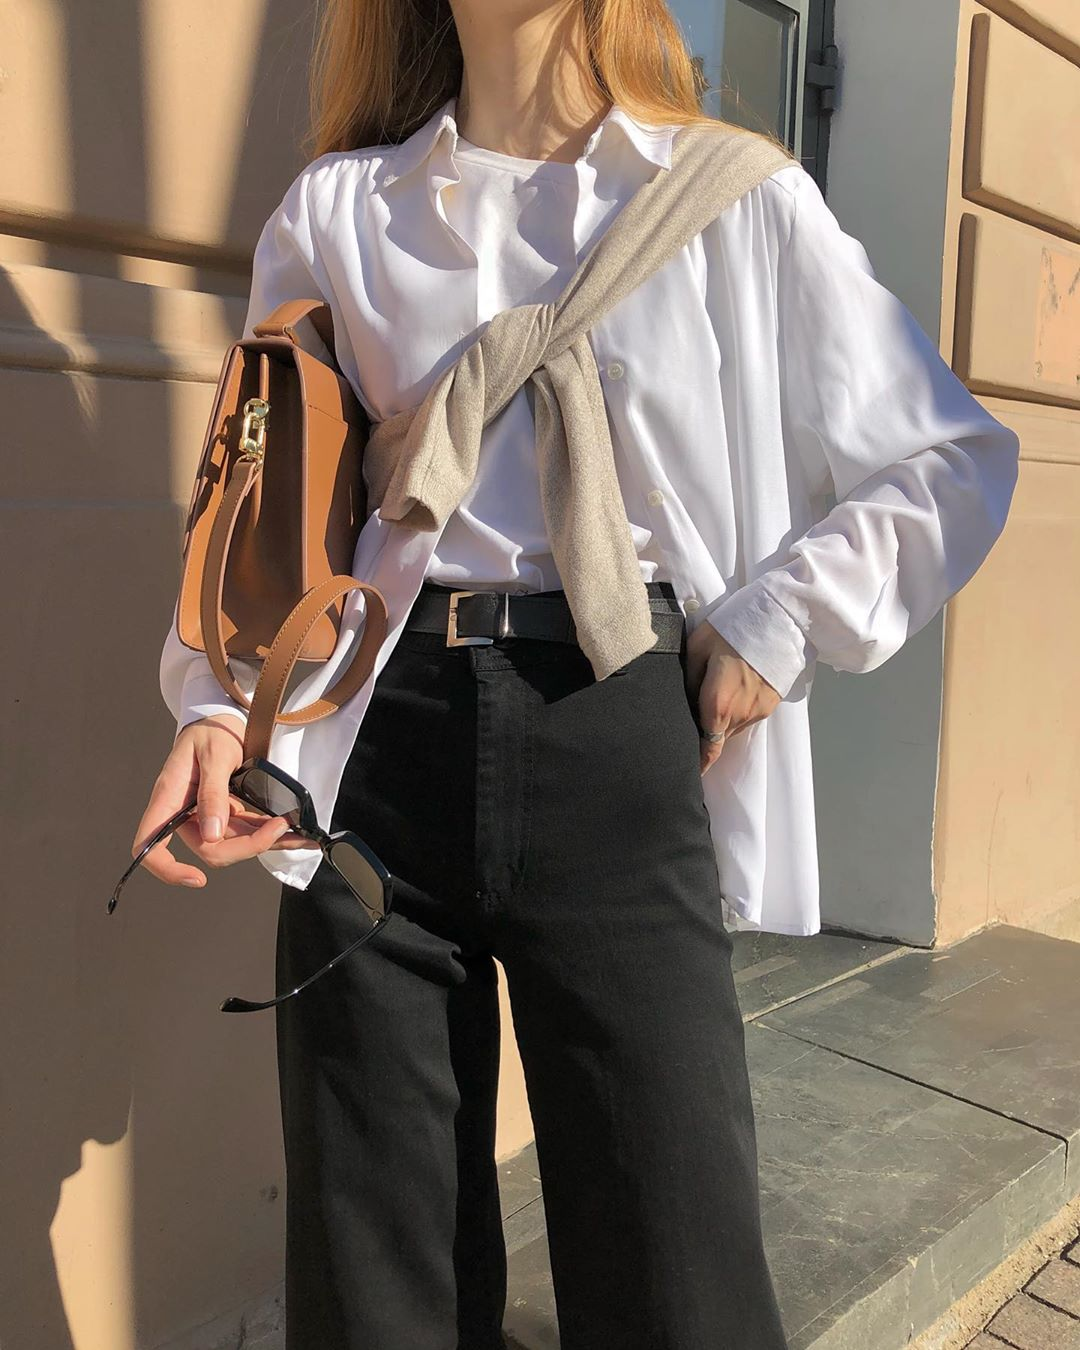 Layered Fall Outfit Inspiration — @lespgdn In Tied Over The Shoulder Sweater, White Button-Down Shirt, Black Jeans, Tan Bag